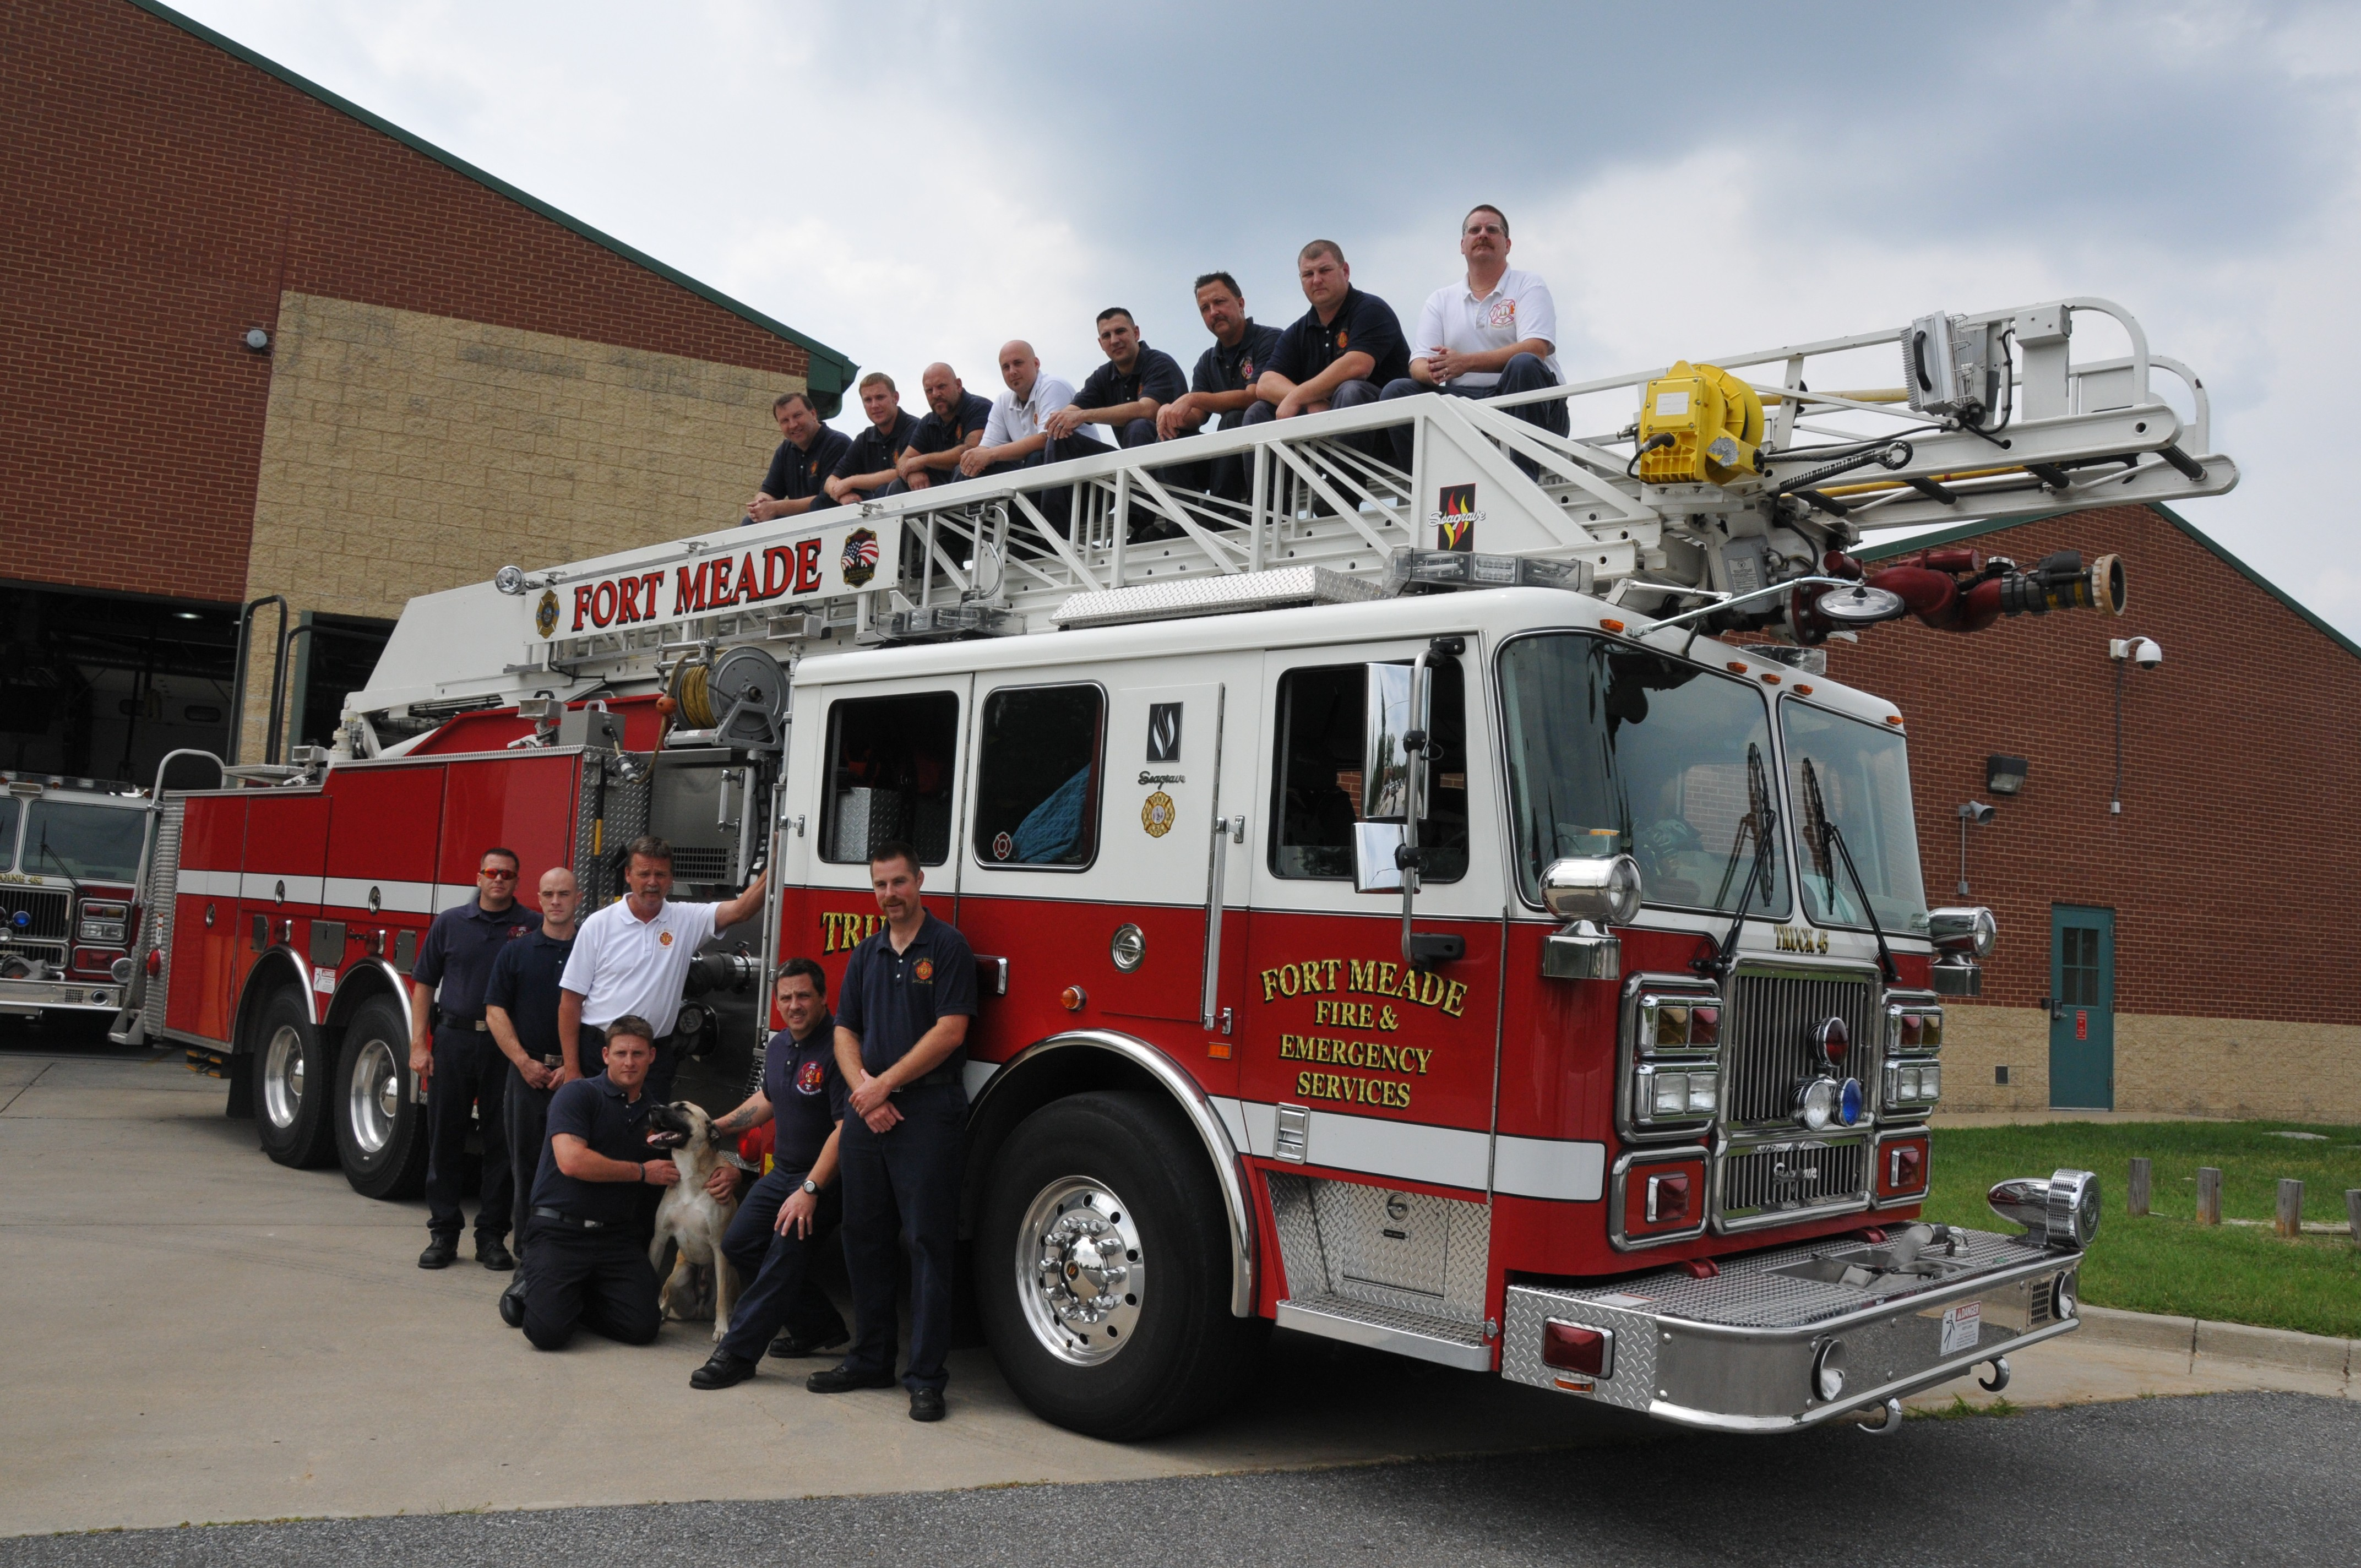 Army Fire Departments Best In Dod Article The United States Army